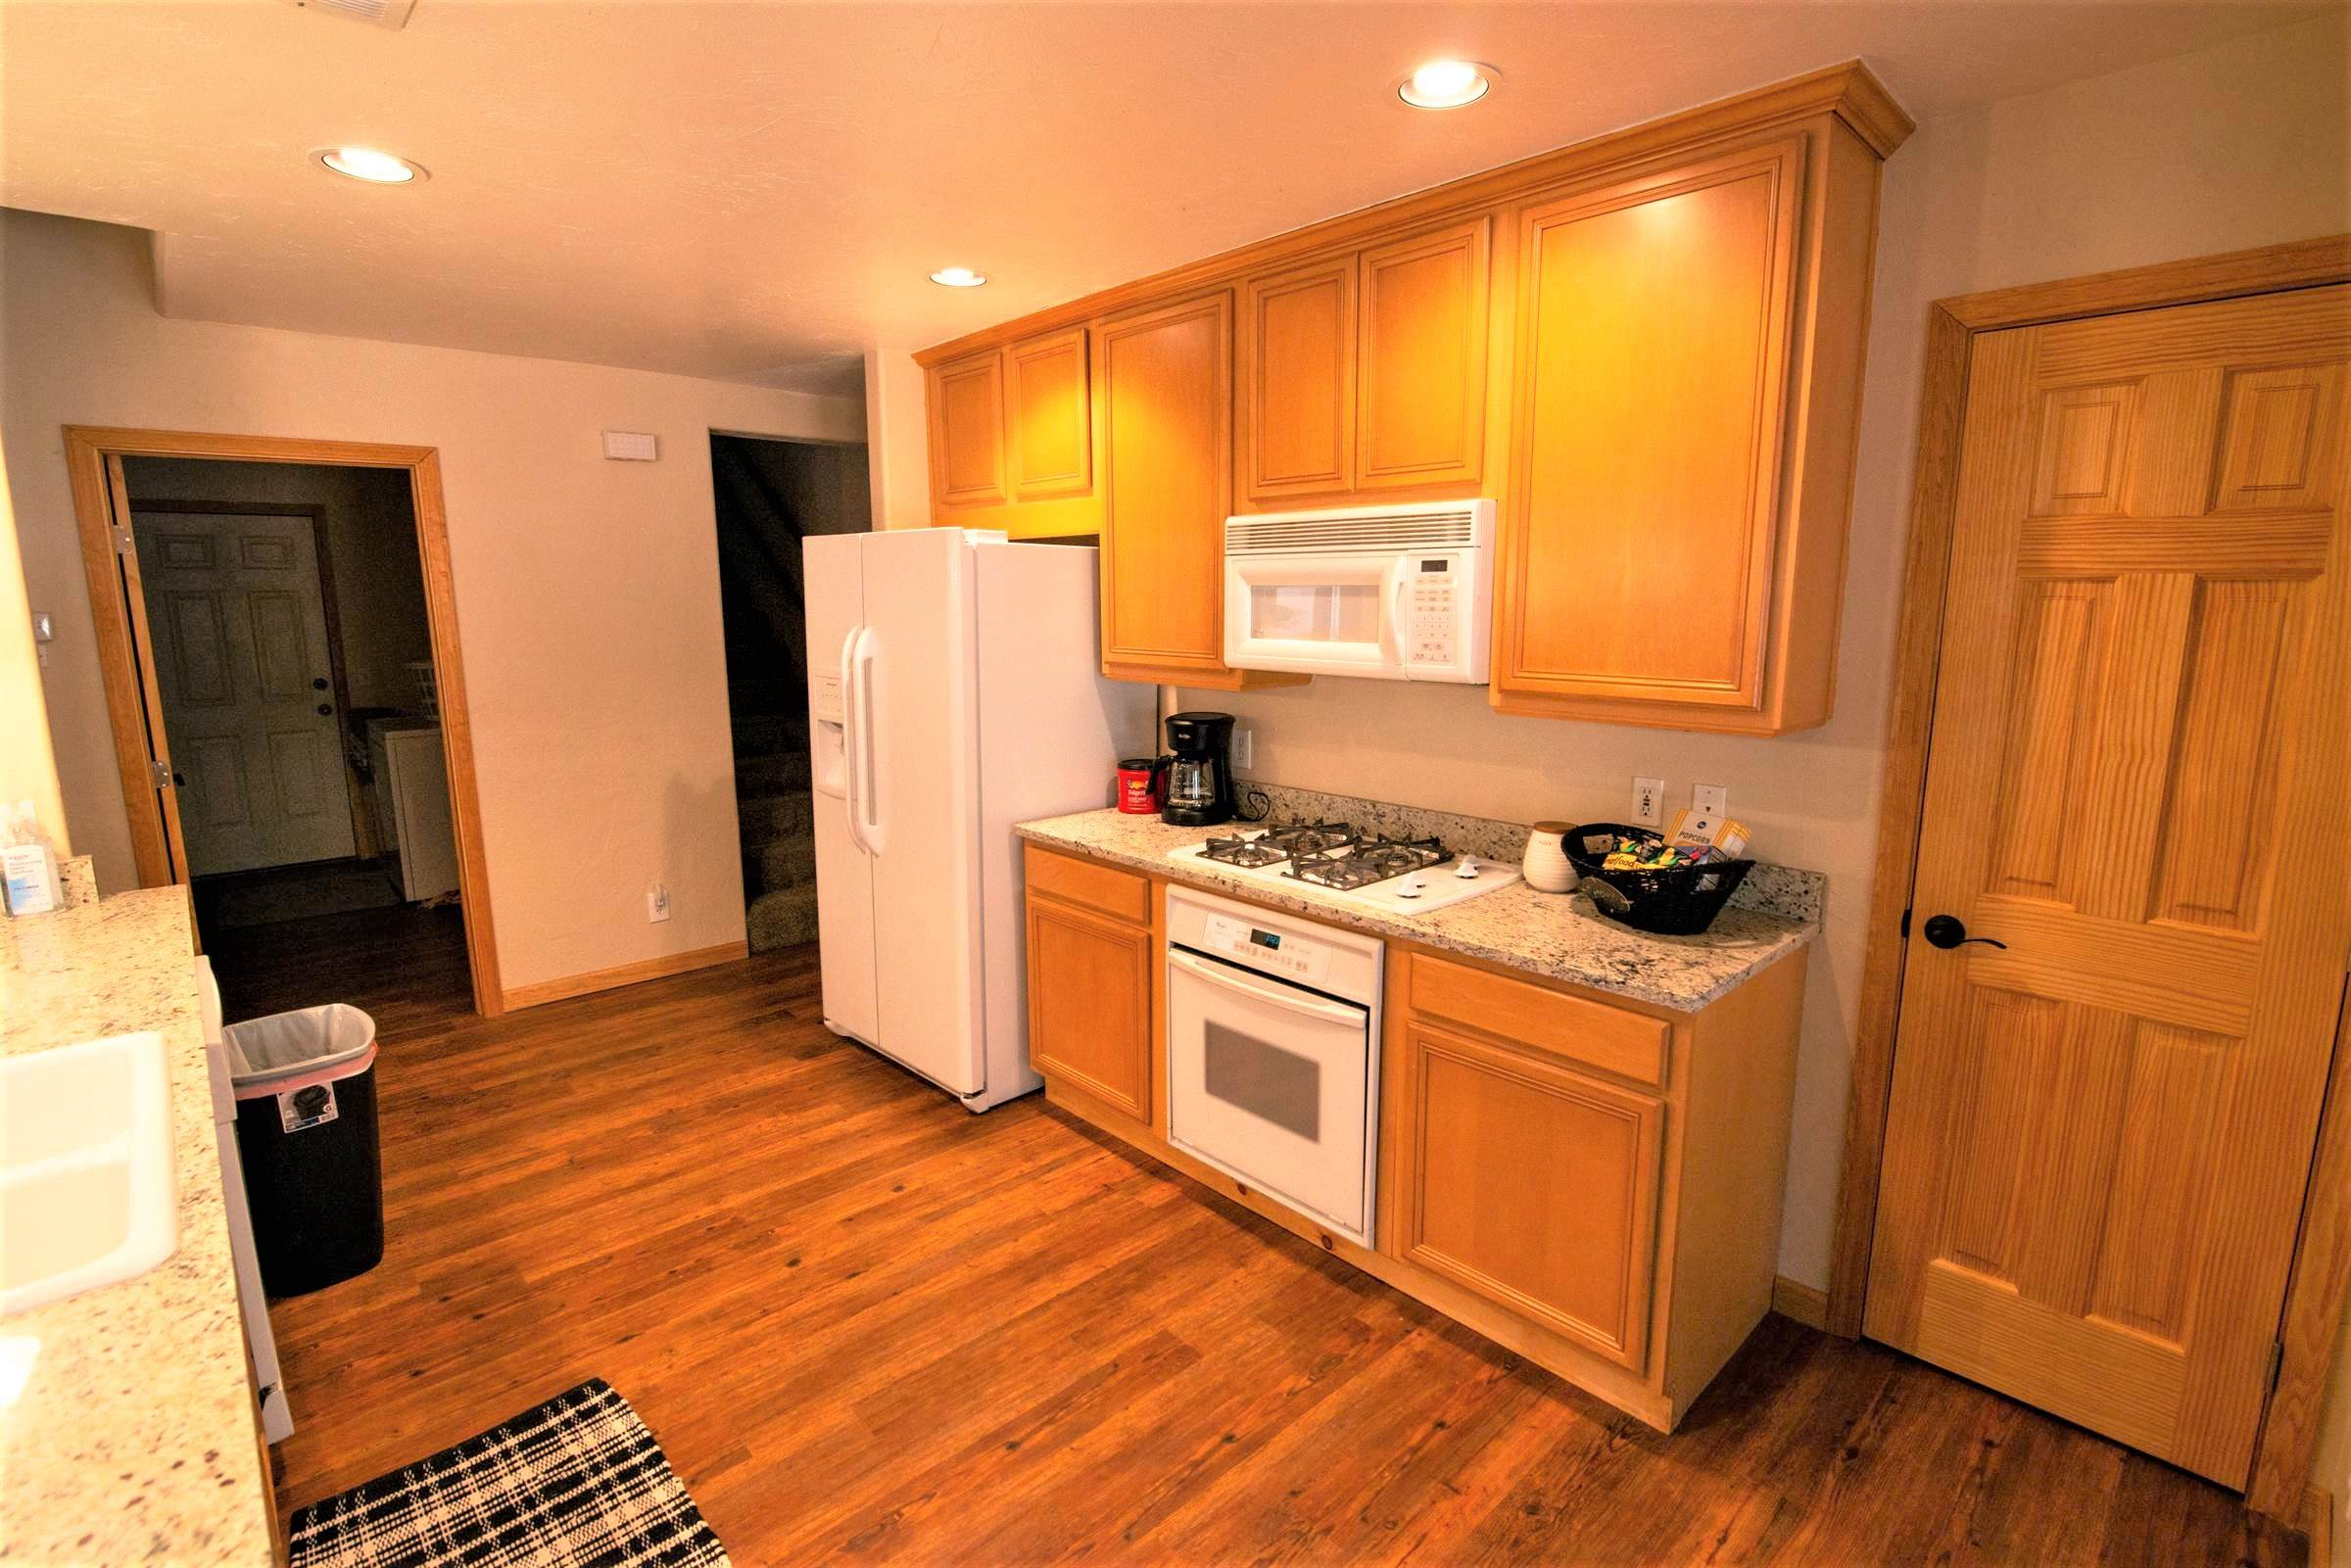 Wildwood Place, #195 Wilderness - SHORT TERM, Pagosa Springs, CO 81147